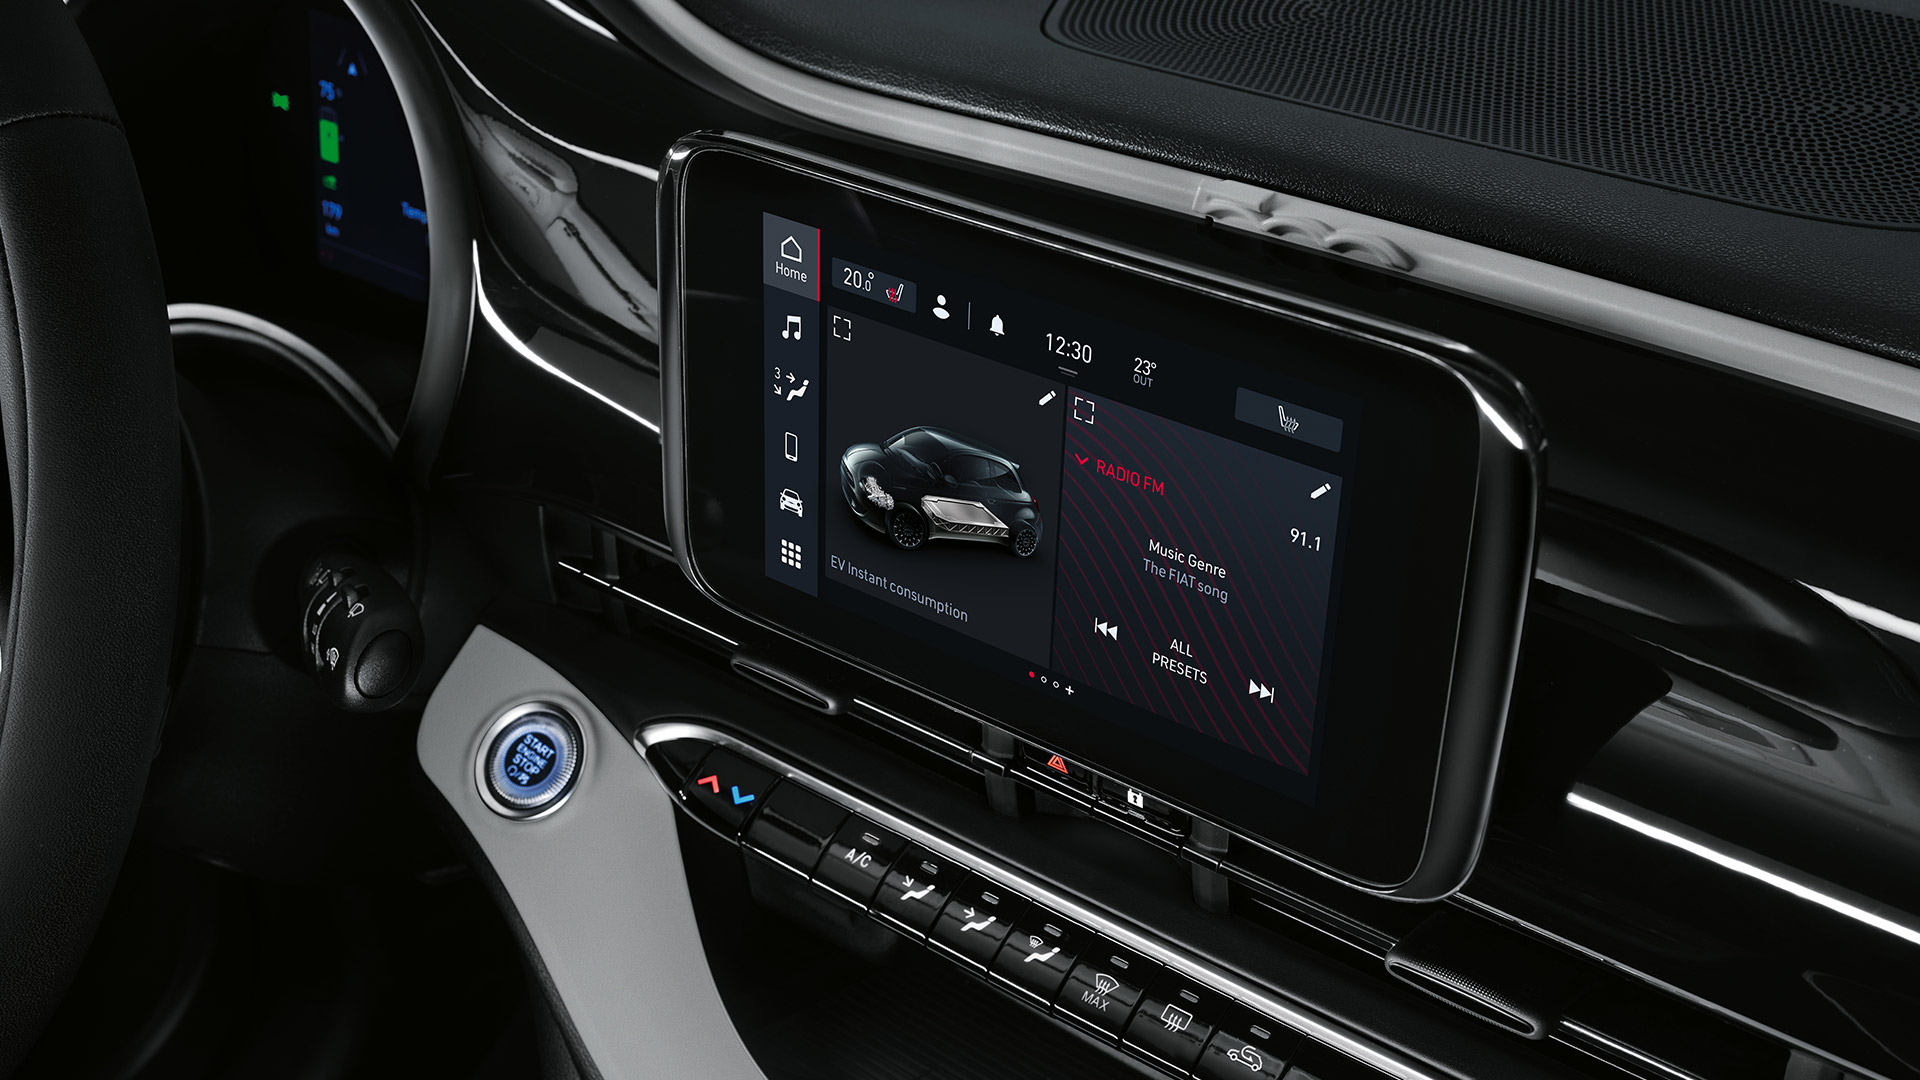 INFOTAINMENTSYSTEEM MET 7-INCH TOUCHSCREEN, DAB+ EN APPLE CARPLAY/ANDROID AUTO™ WIRELESS